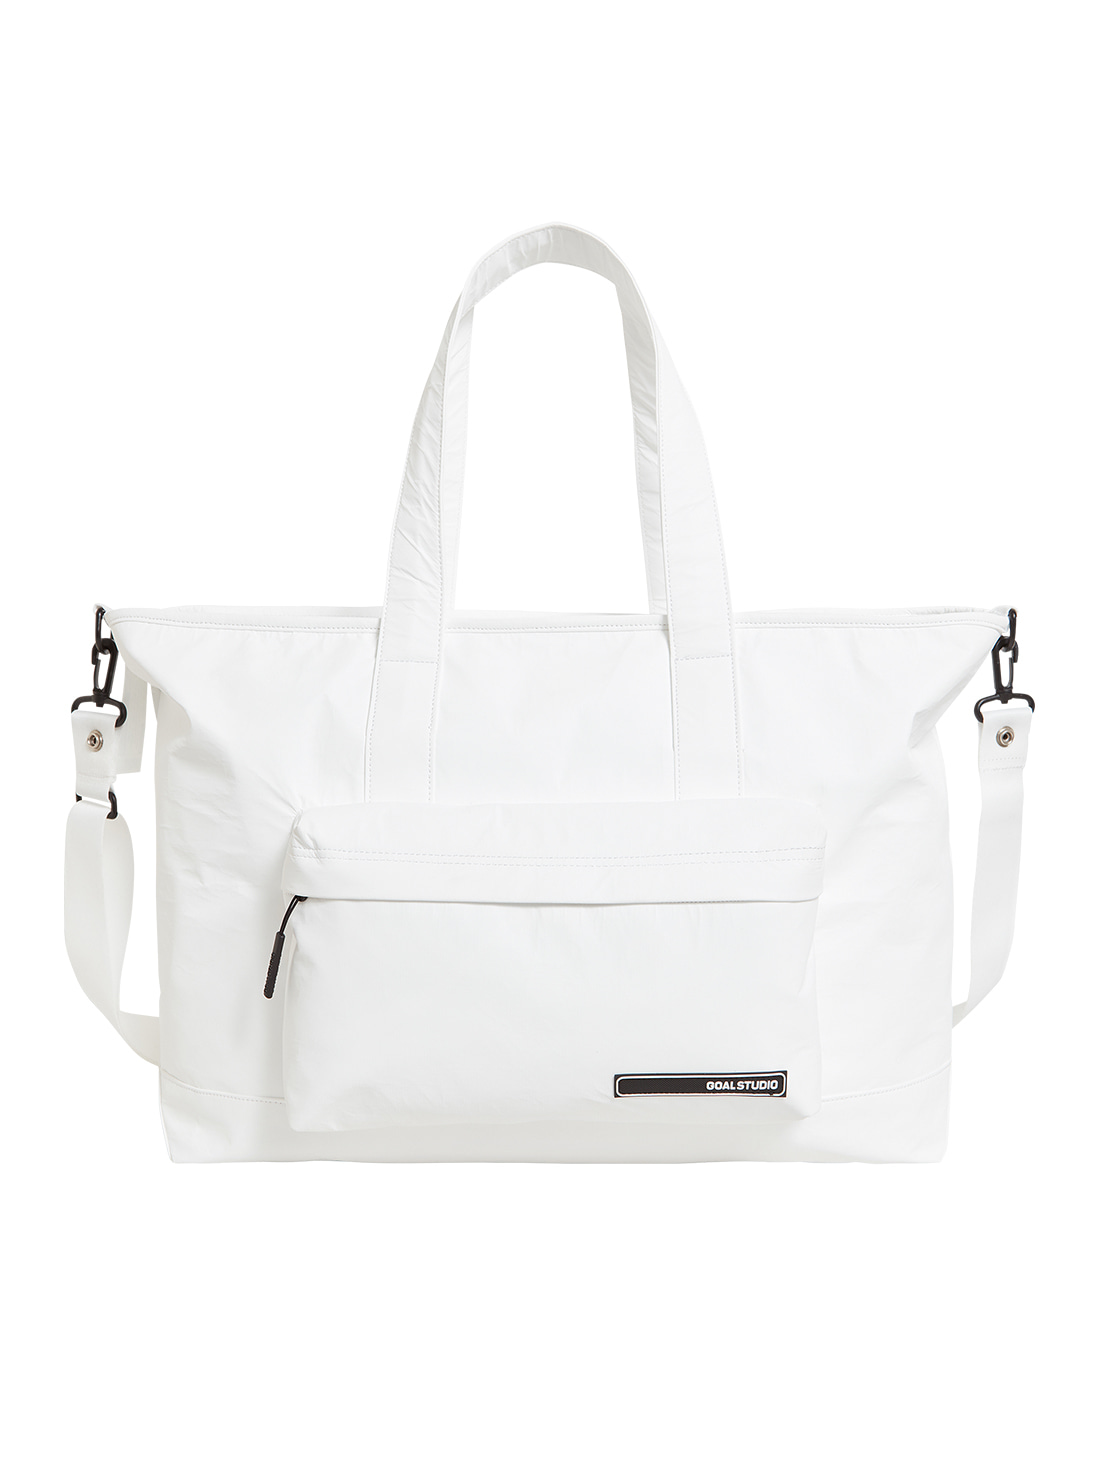 GOALSTUDIO LOGO WAPPEN TOTE BAG - WHITE